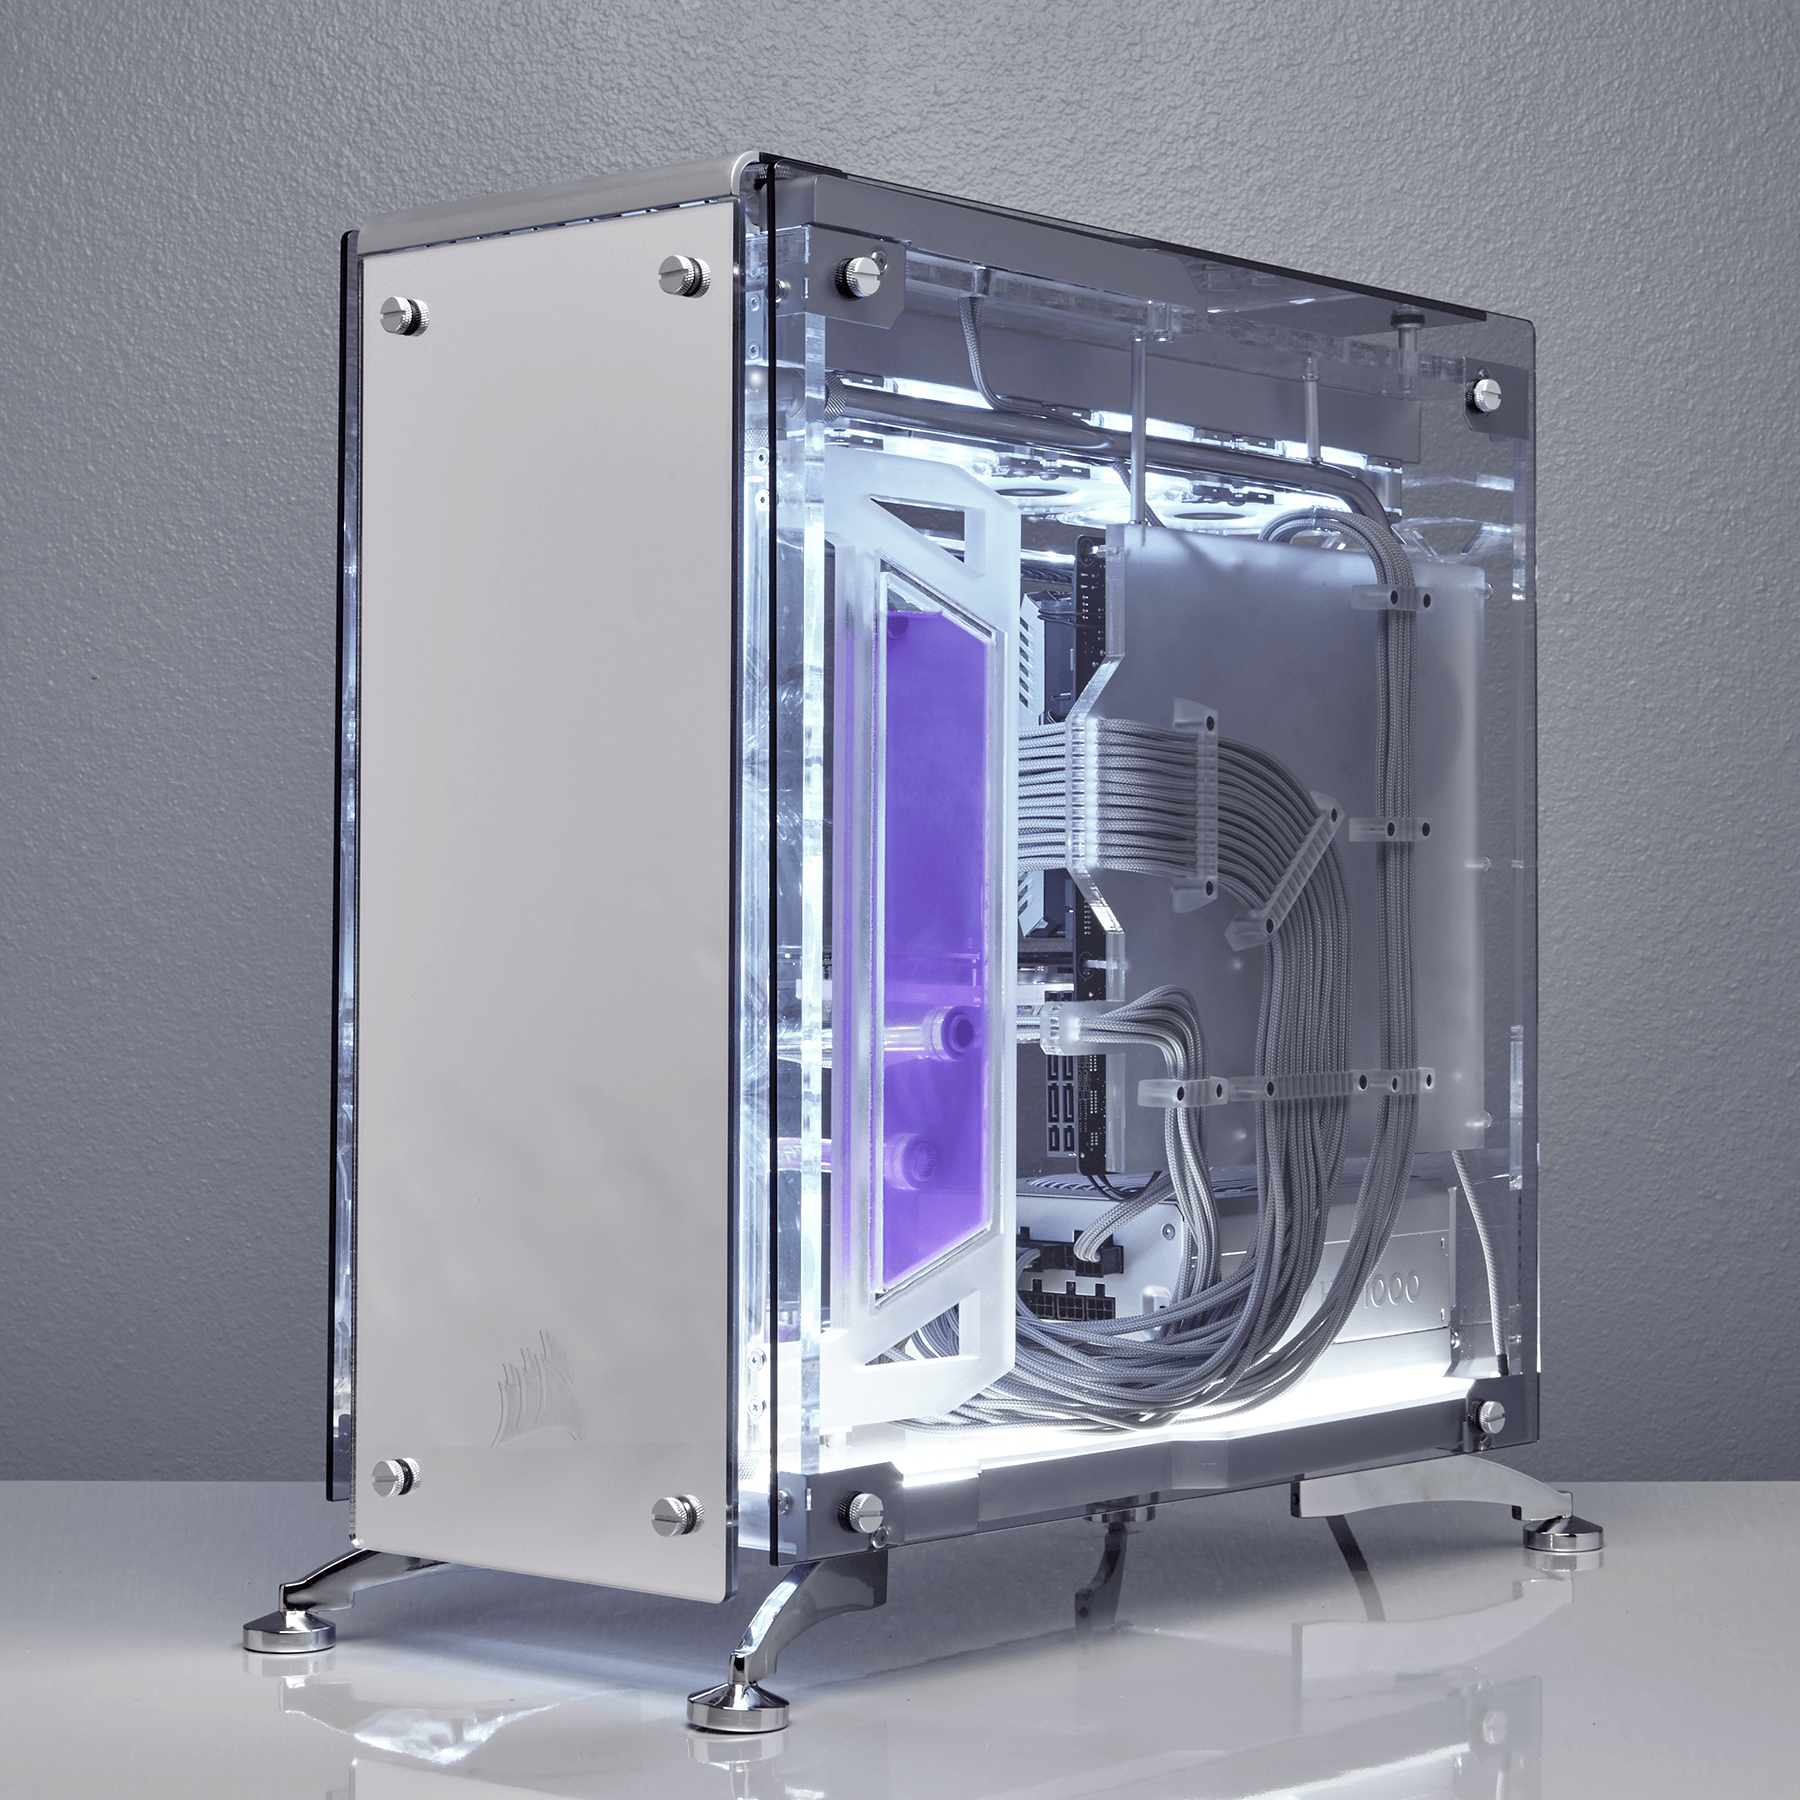 Twistermod_Corsair_ROG_570x_Crystalized_02